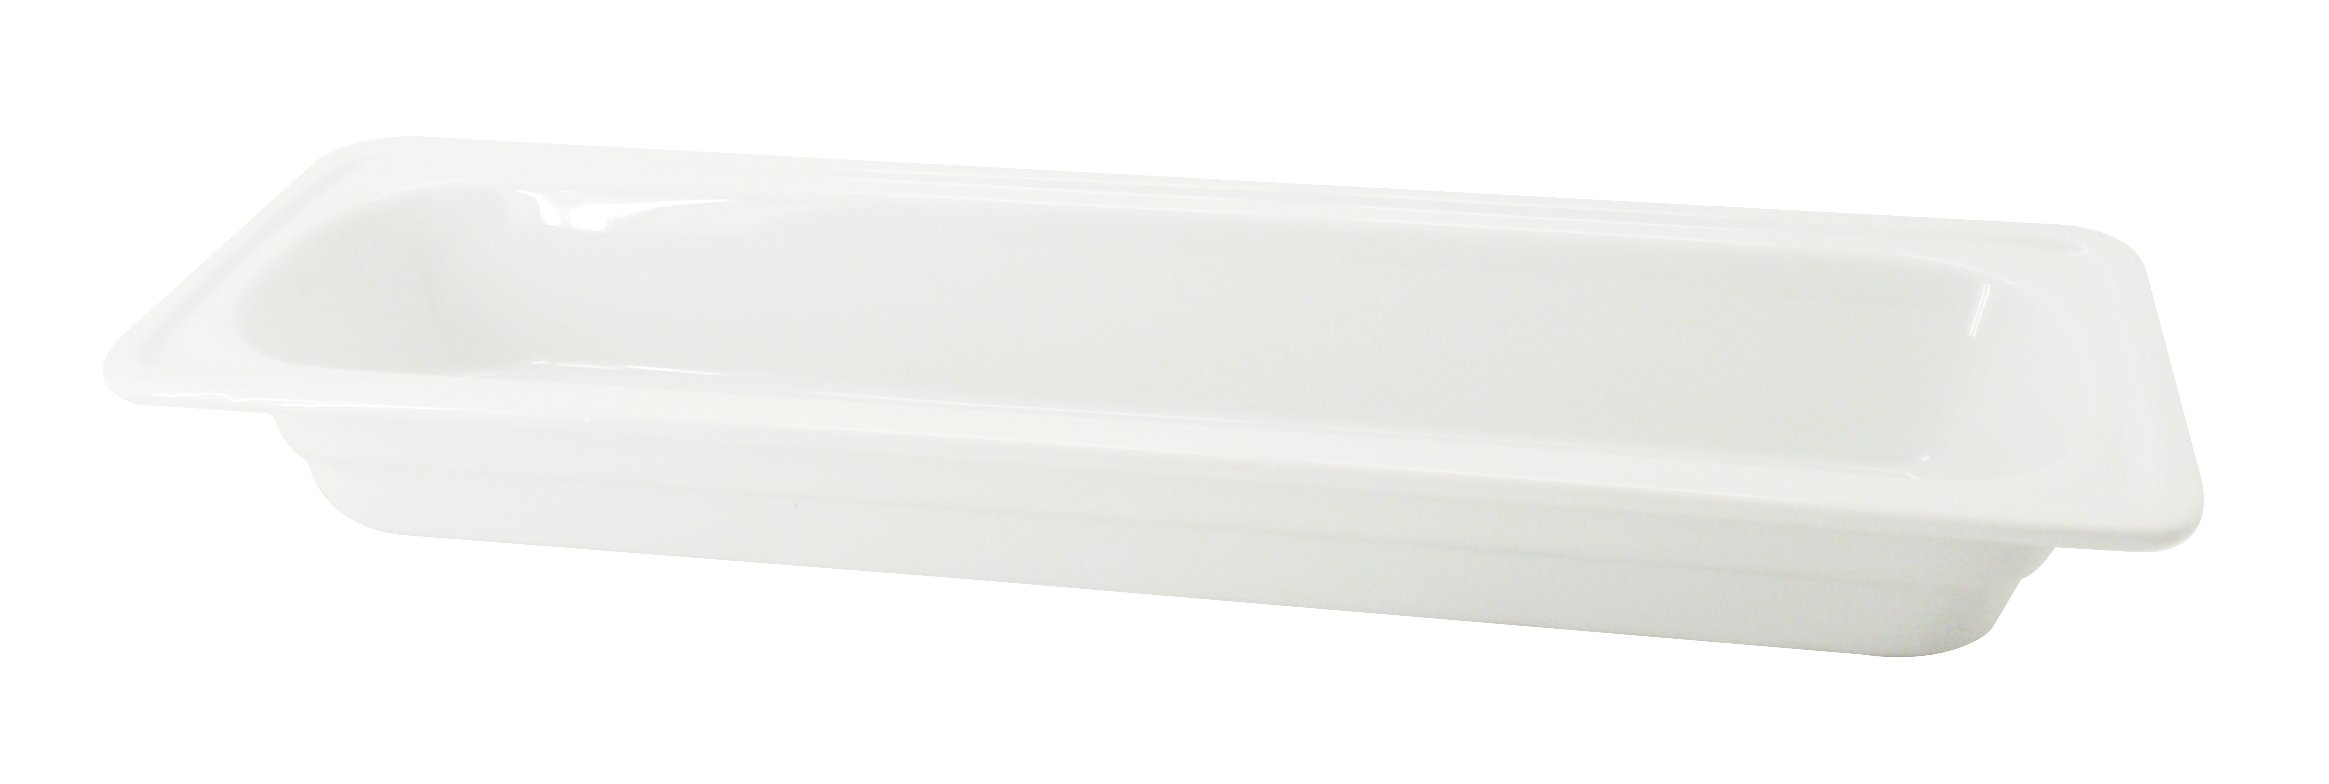 CAC China BF-204 Food Pans Bright White Porcelain 2/4 GN Pan, 20-7/8 by 6-3/8 by 2-1/2-Inch, 8-Pack